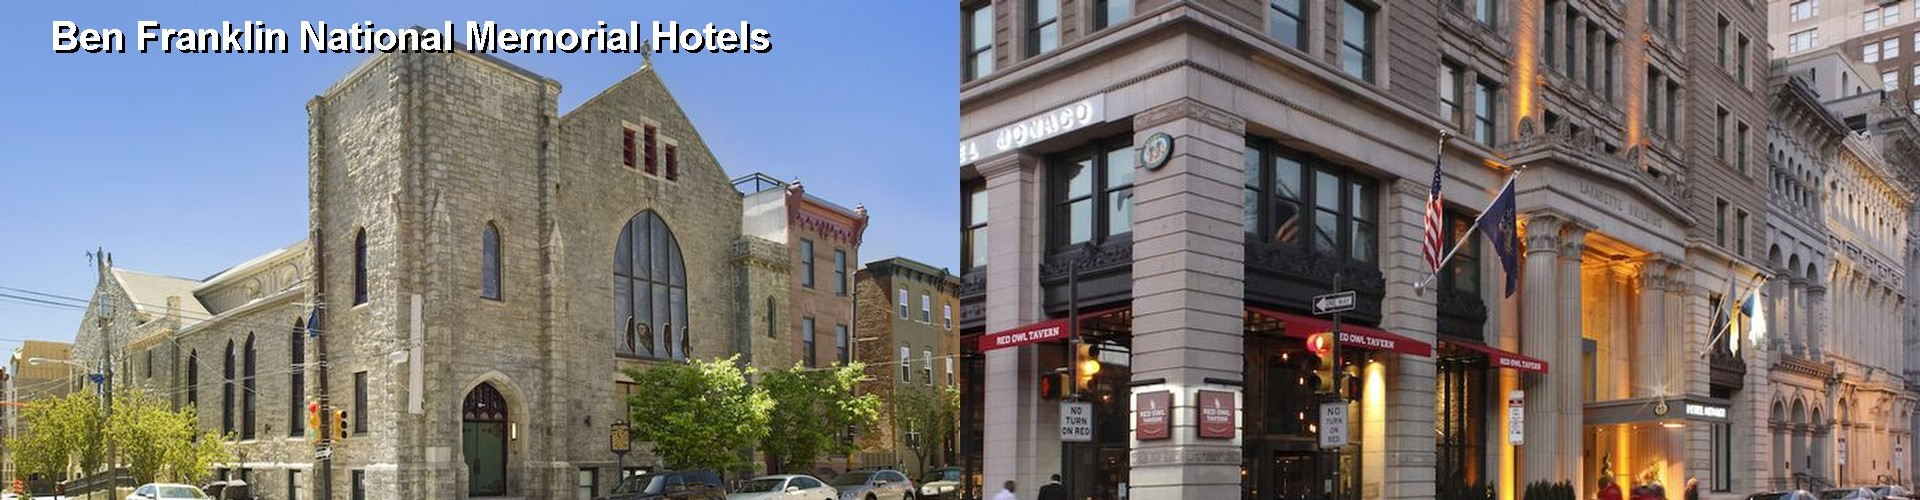 $46+ Hotels Near Ben Franklin National Memorial in Philadelphia PA